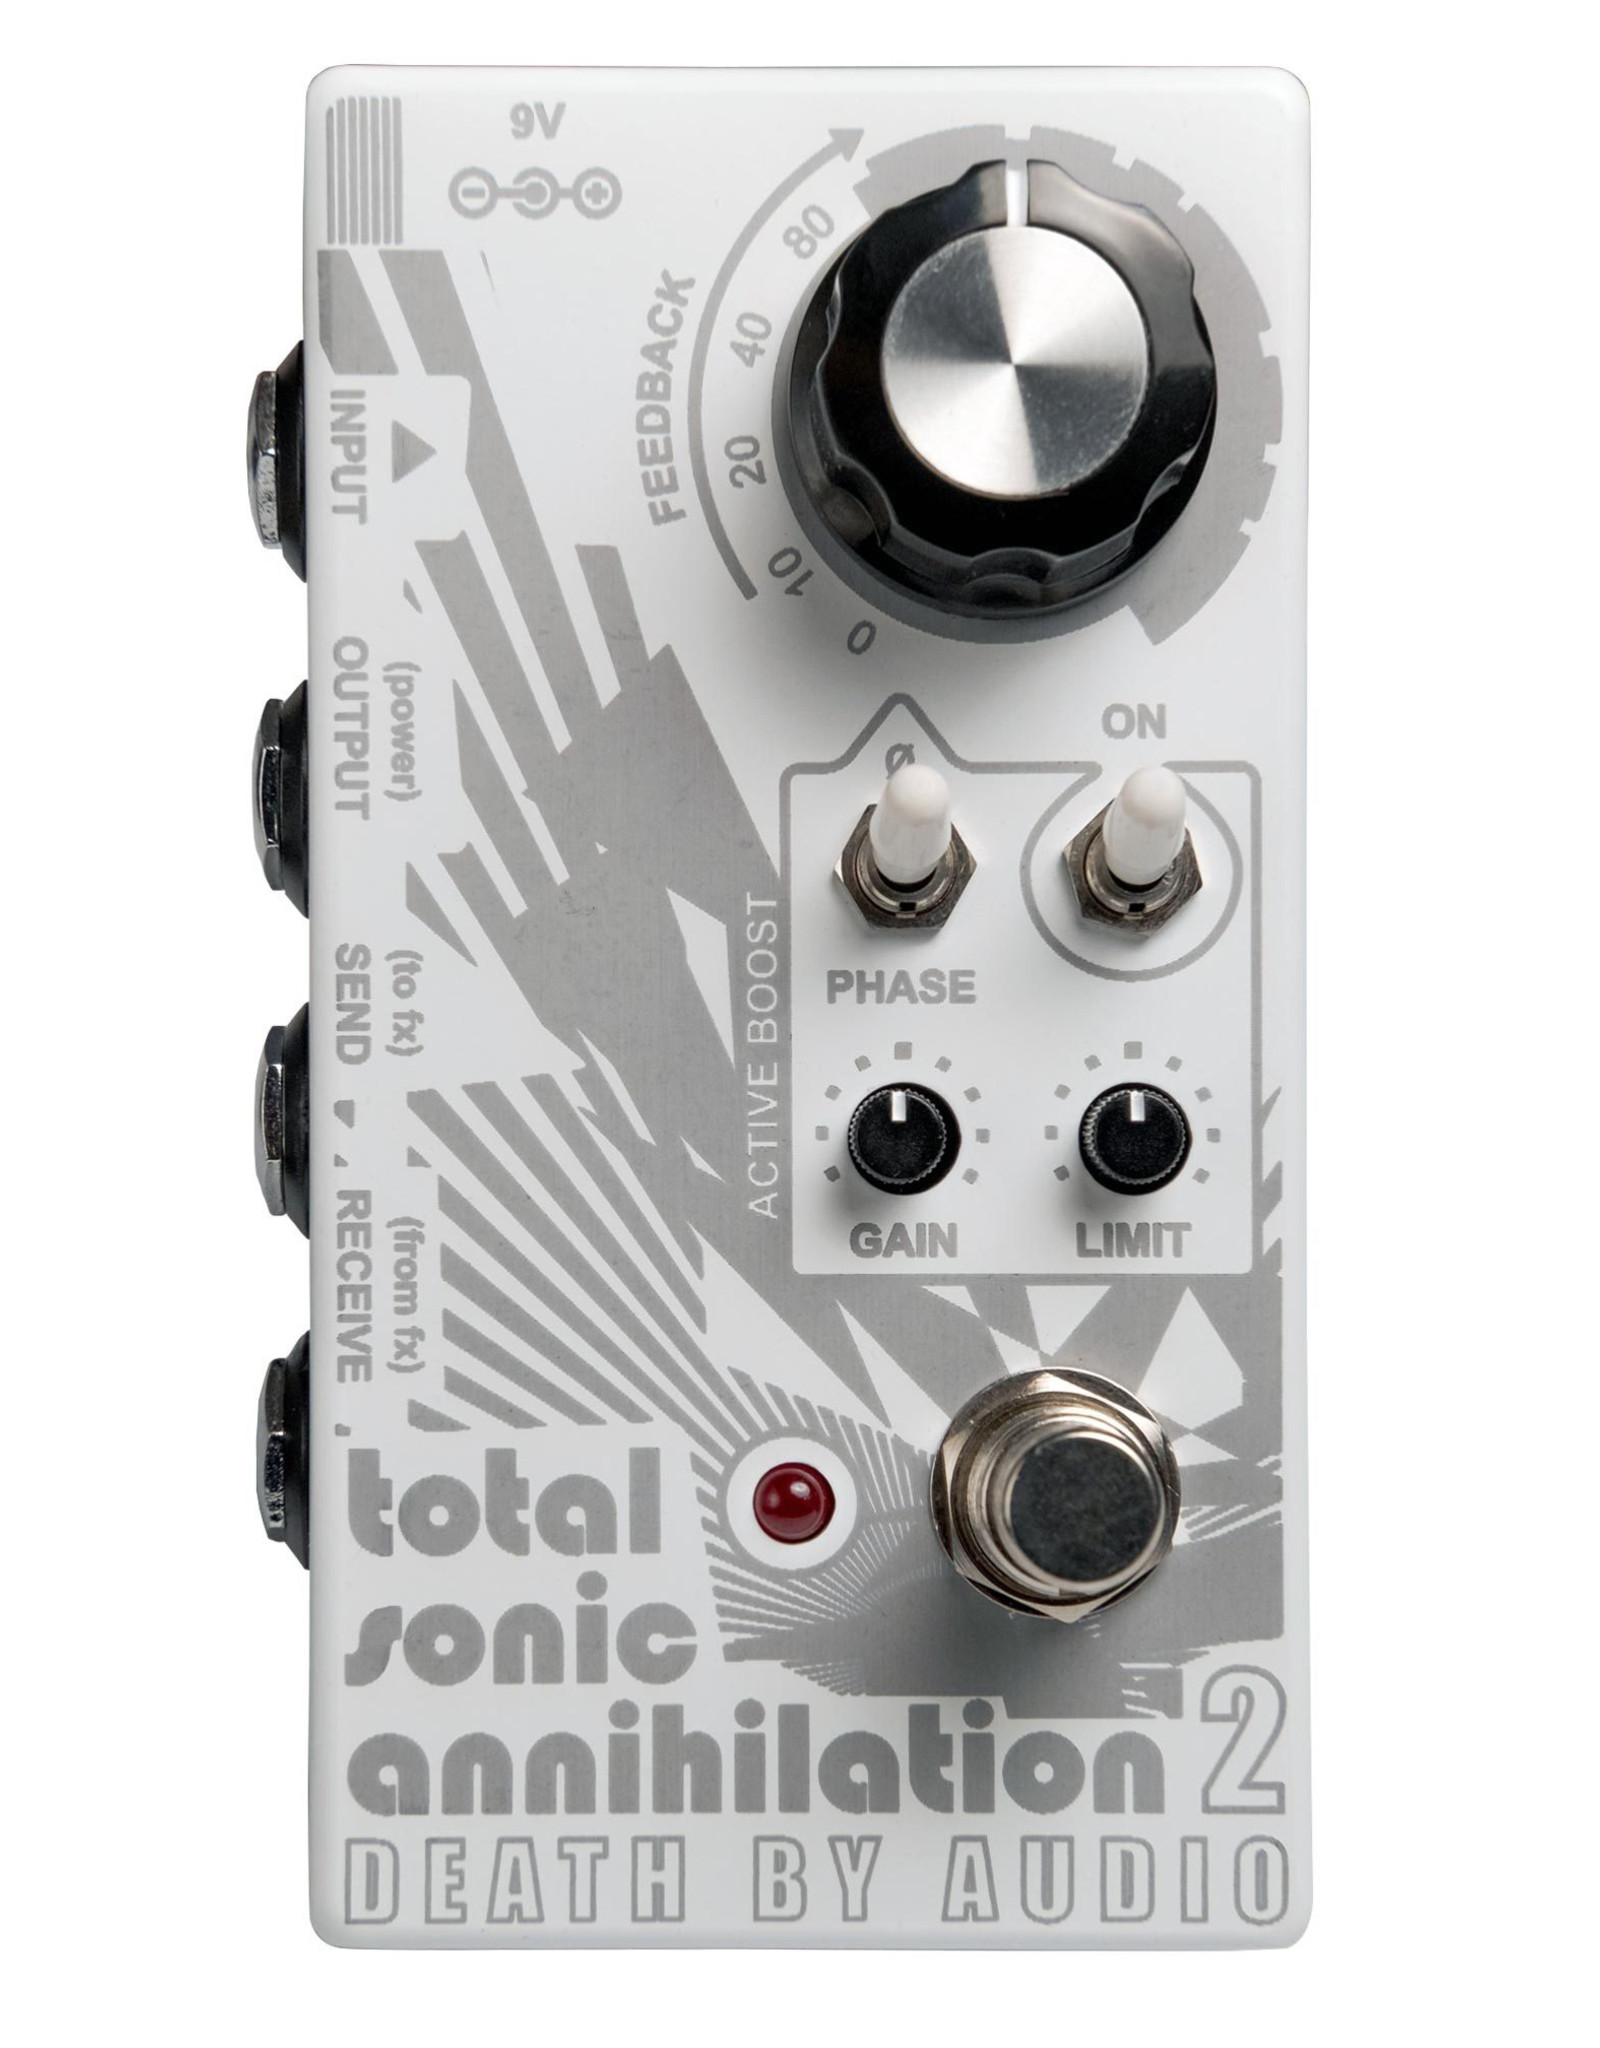 Death By Audio Death By Audio Total Sonic Annihilation 2